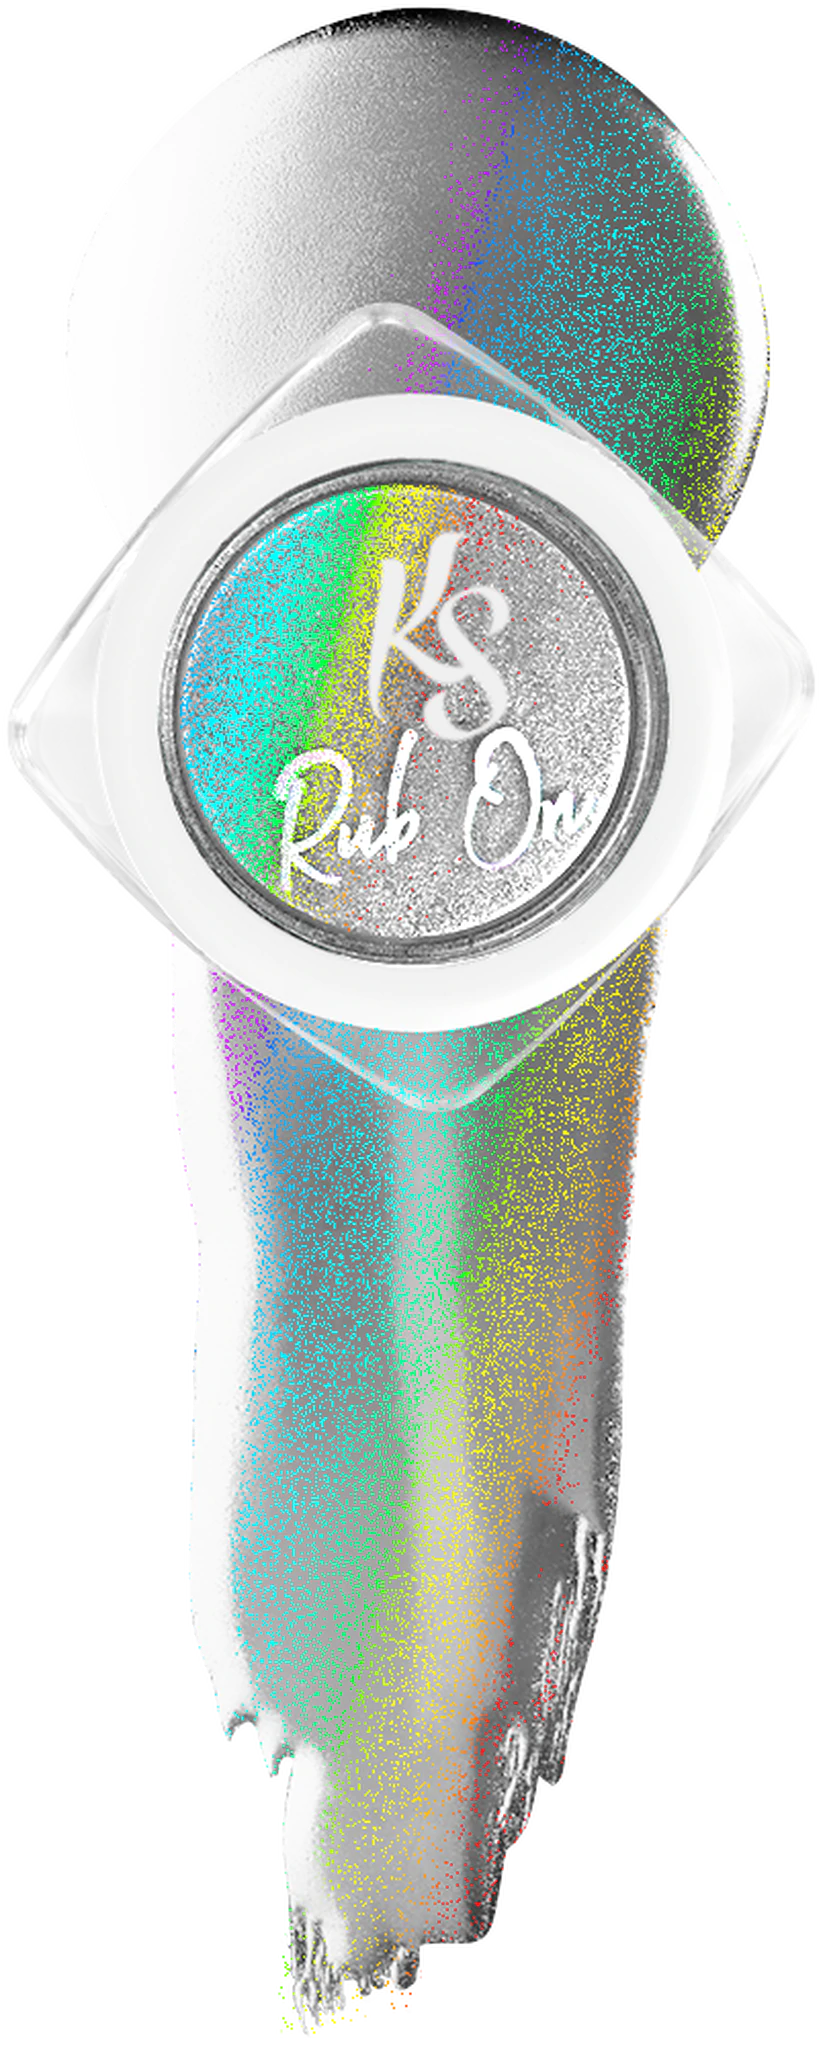 Kiara Sky Rub On Disco Ball